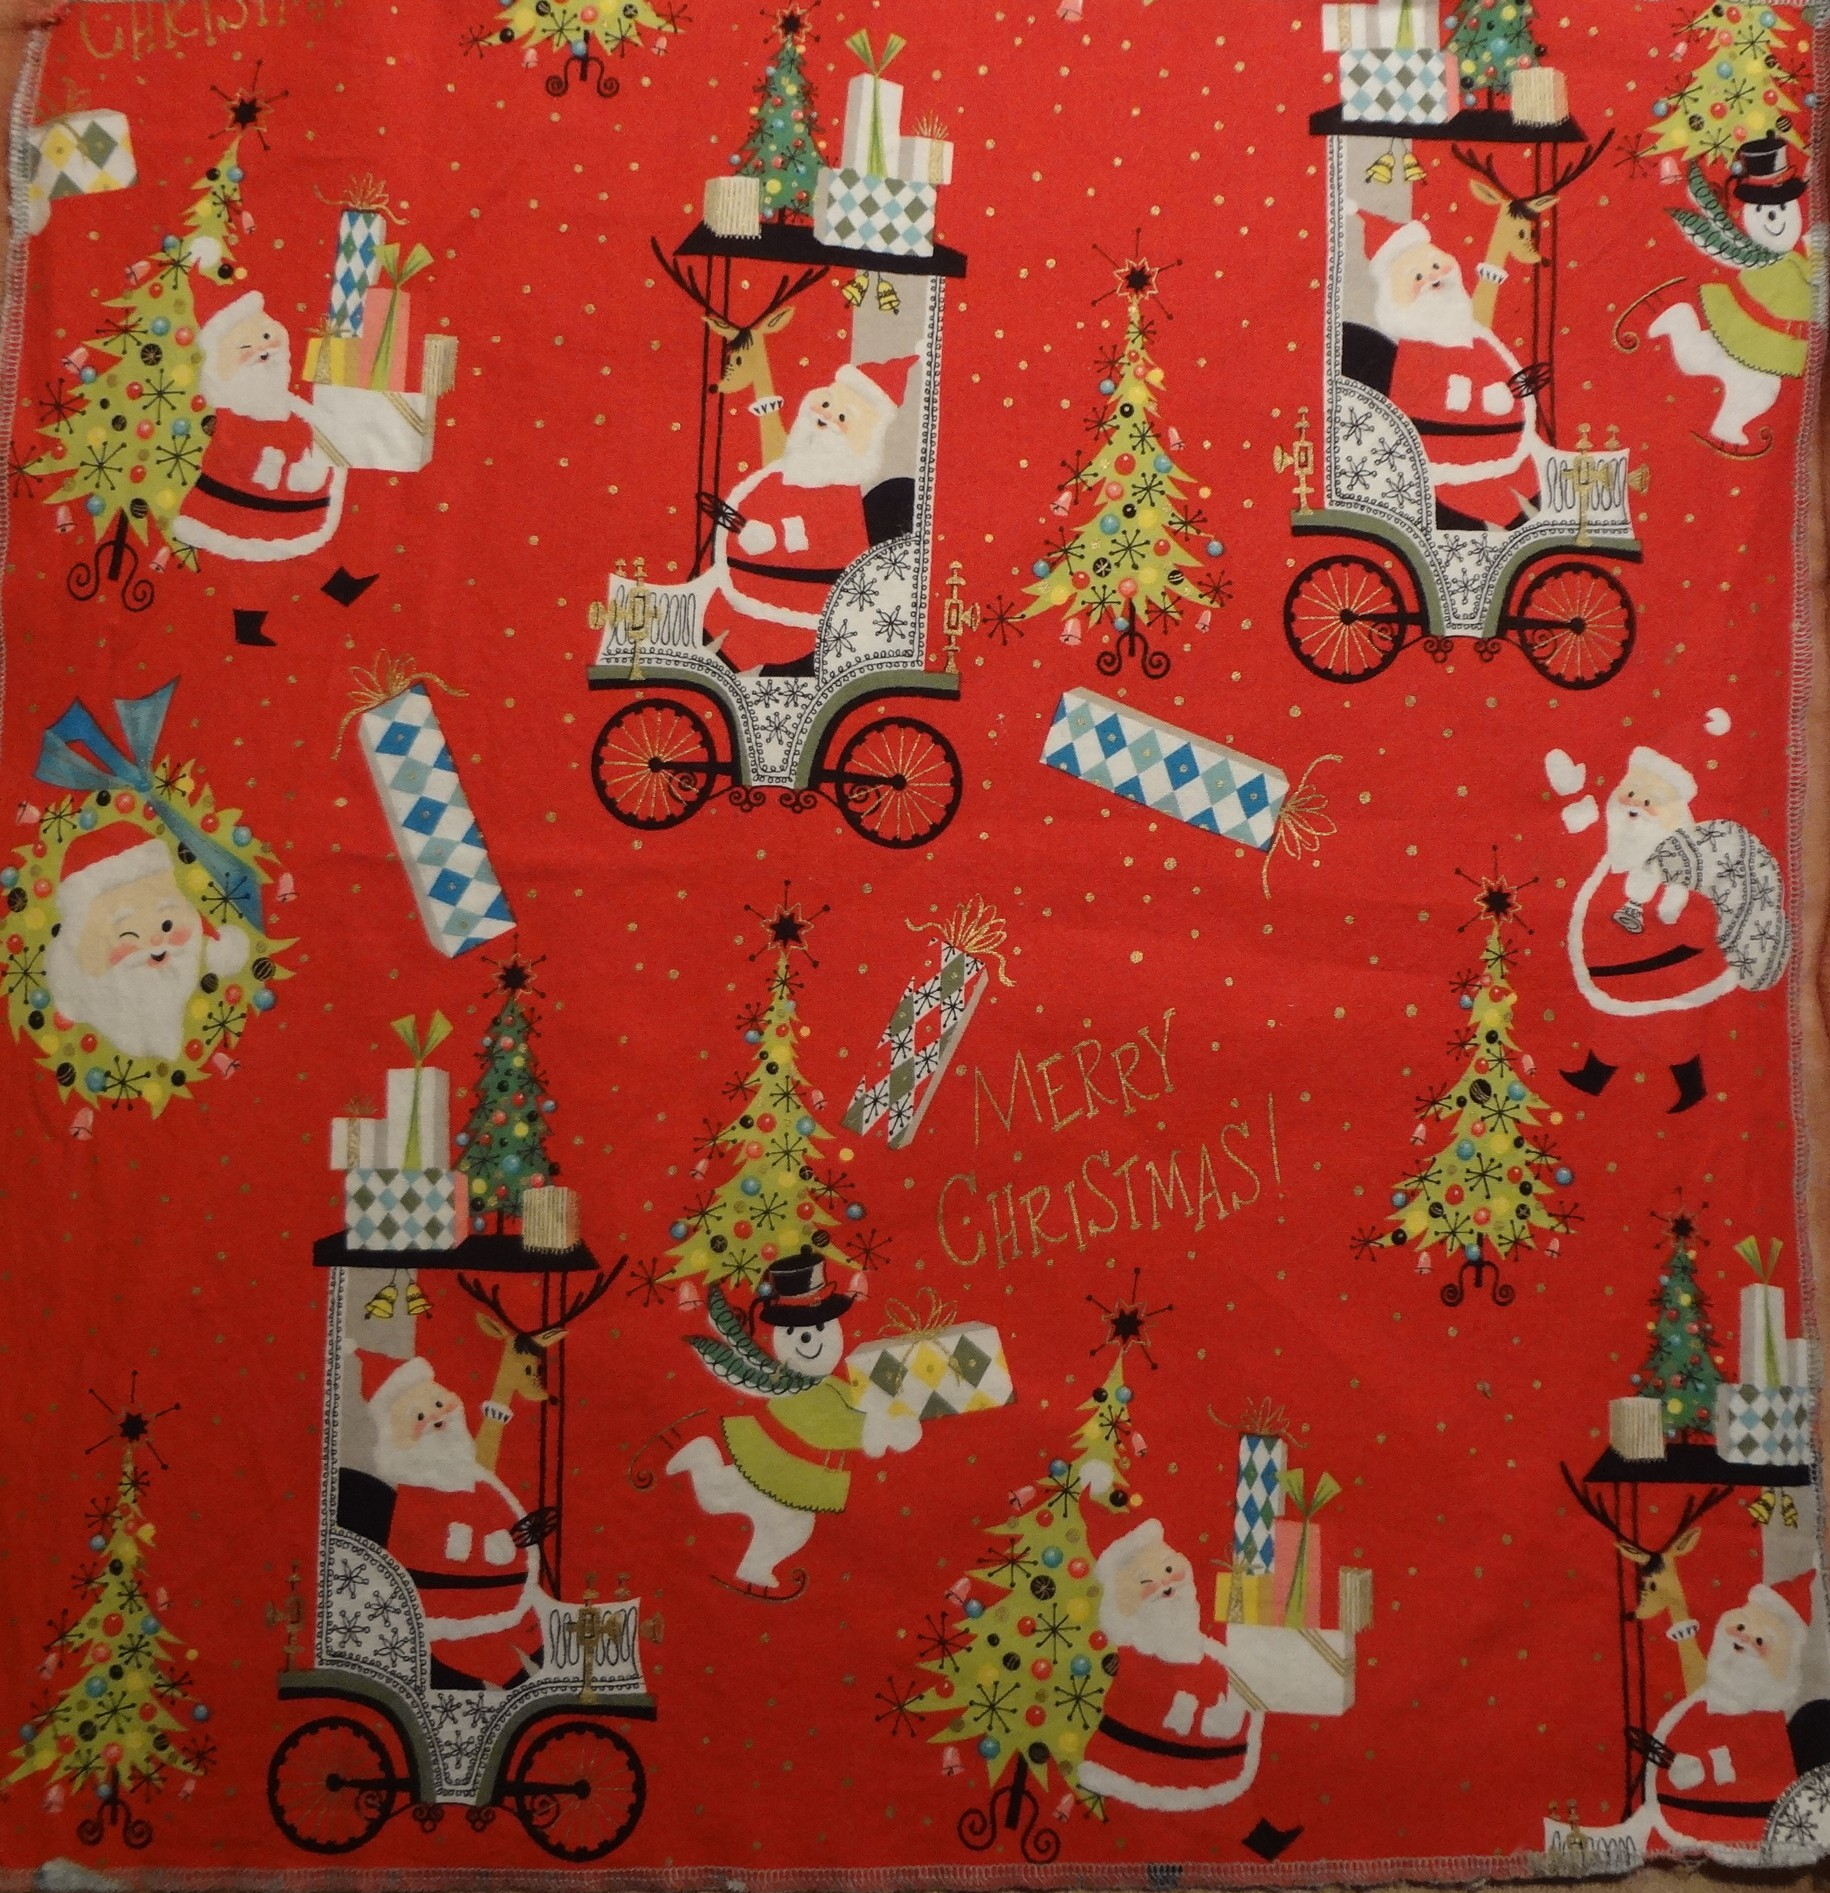 Vintage Christmas Fabric | The Vintage Traveler